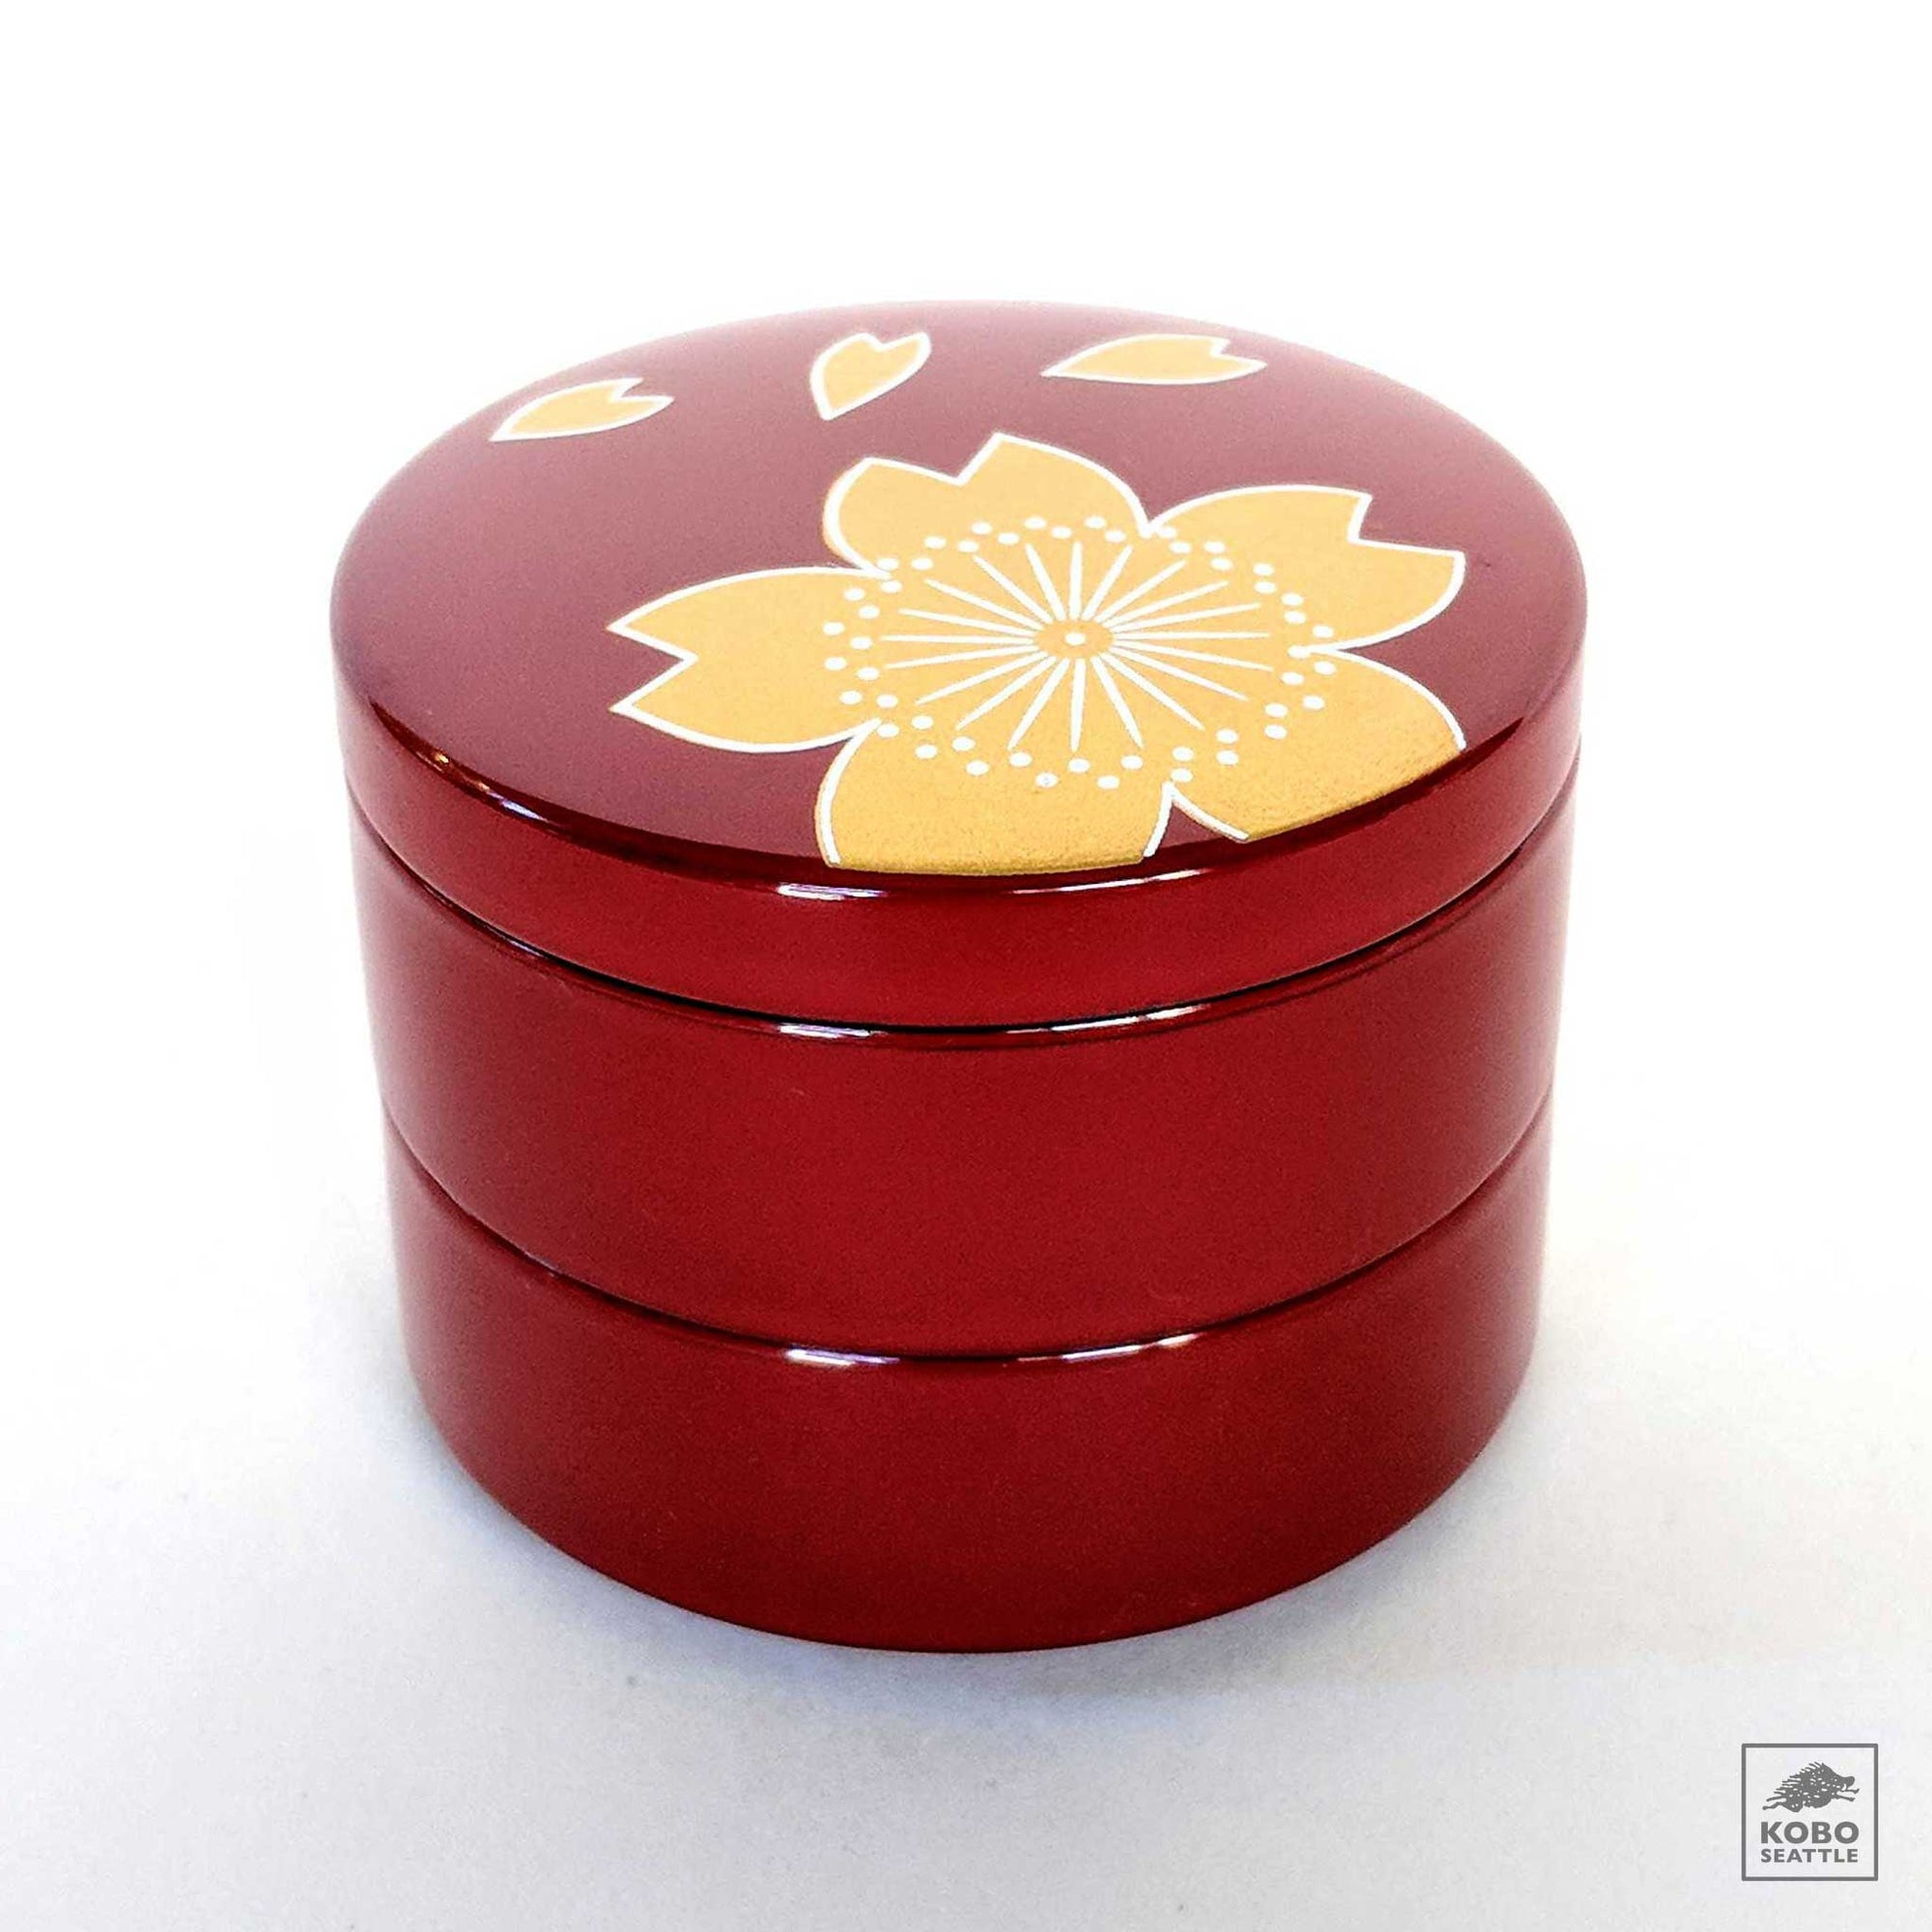 Heiando Japanese Lacquer Accessory Box - Red Sakura